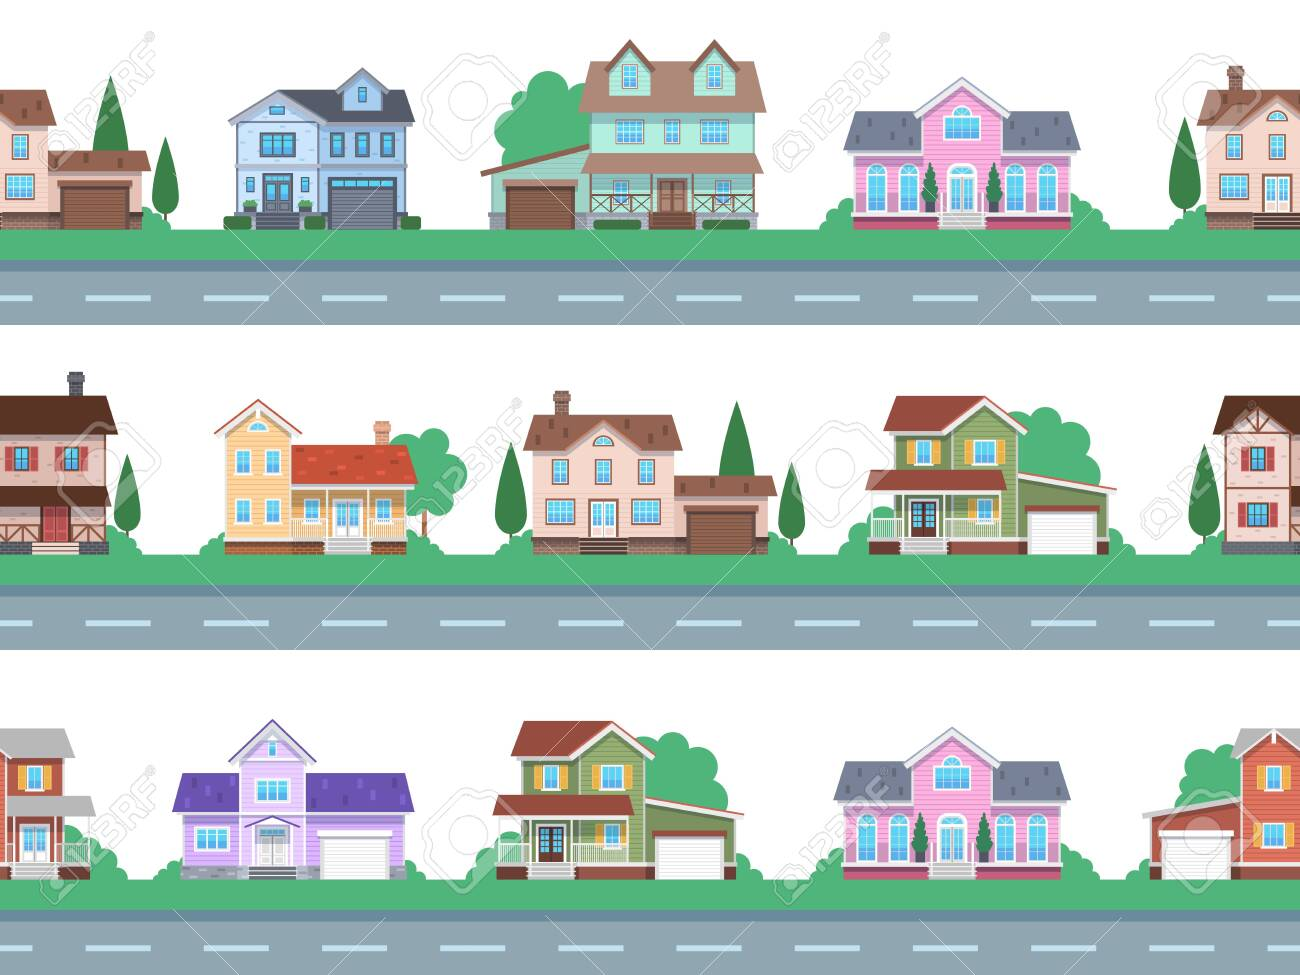 Houses on road. Home facades, cottage or suburban townhouse, front view family house with garage and terrace, architecture real estate modern design, cartoon seamless flat vector pattern and borders - 154561551